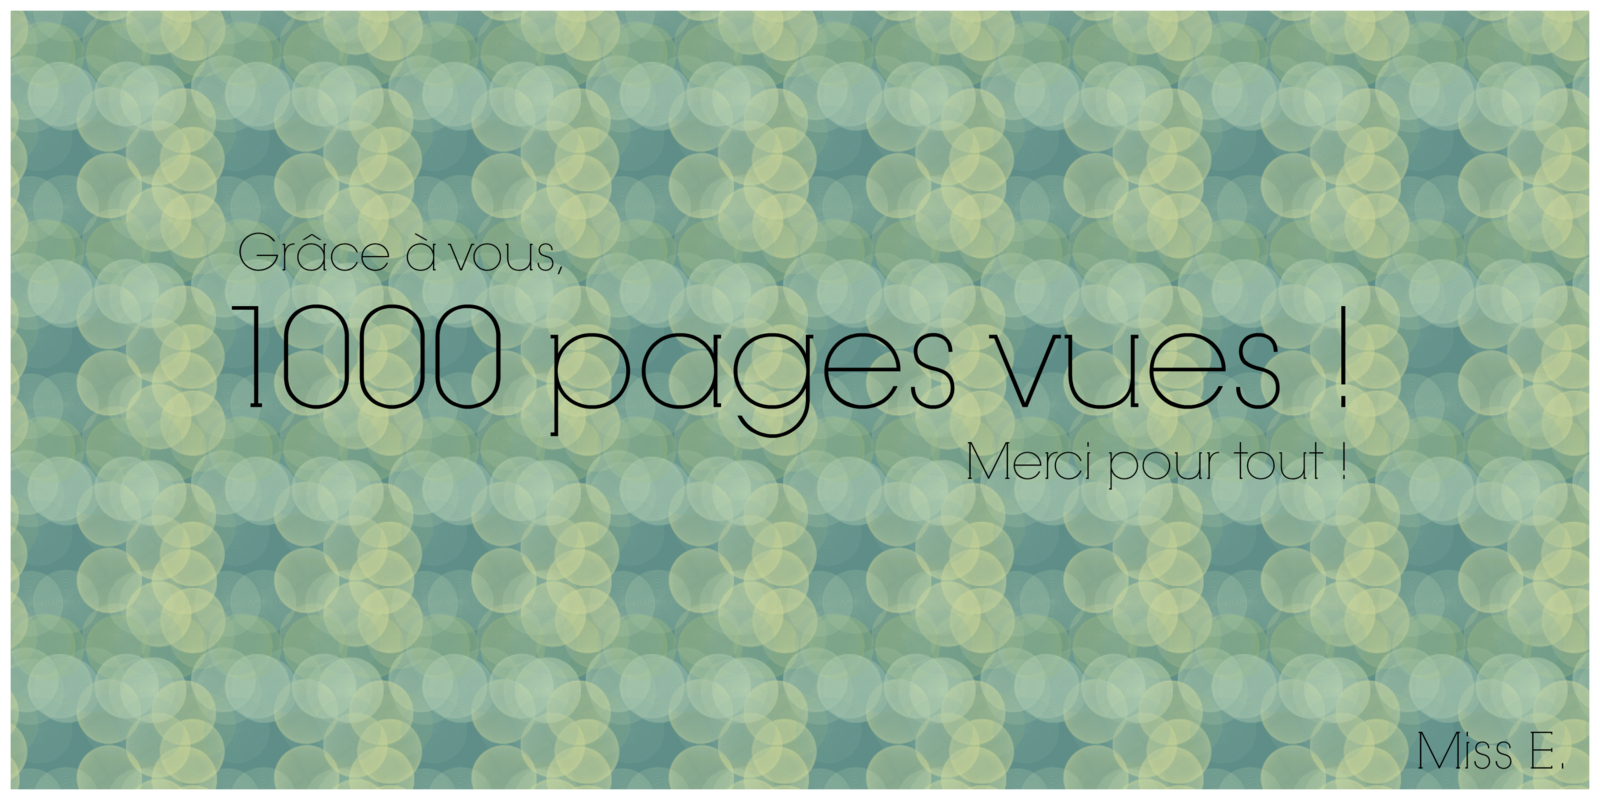 1000 pages vues !